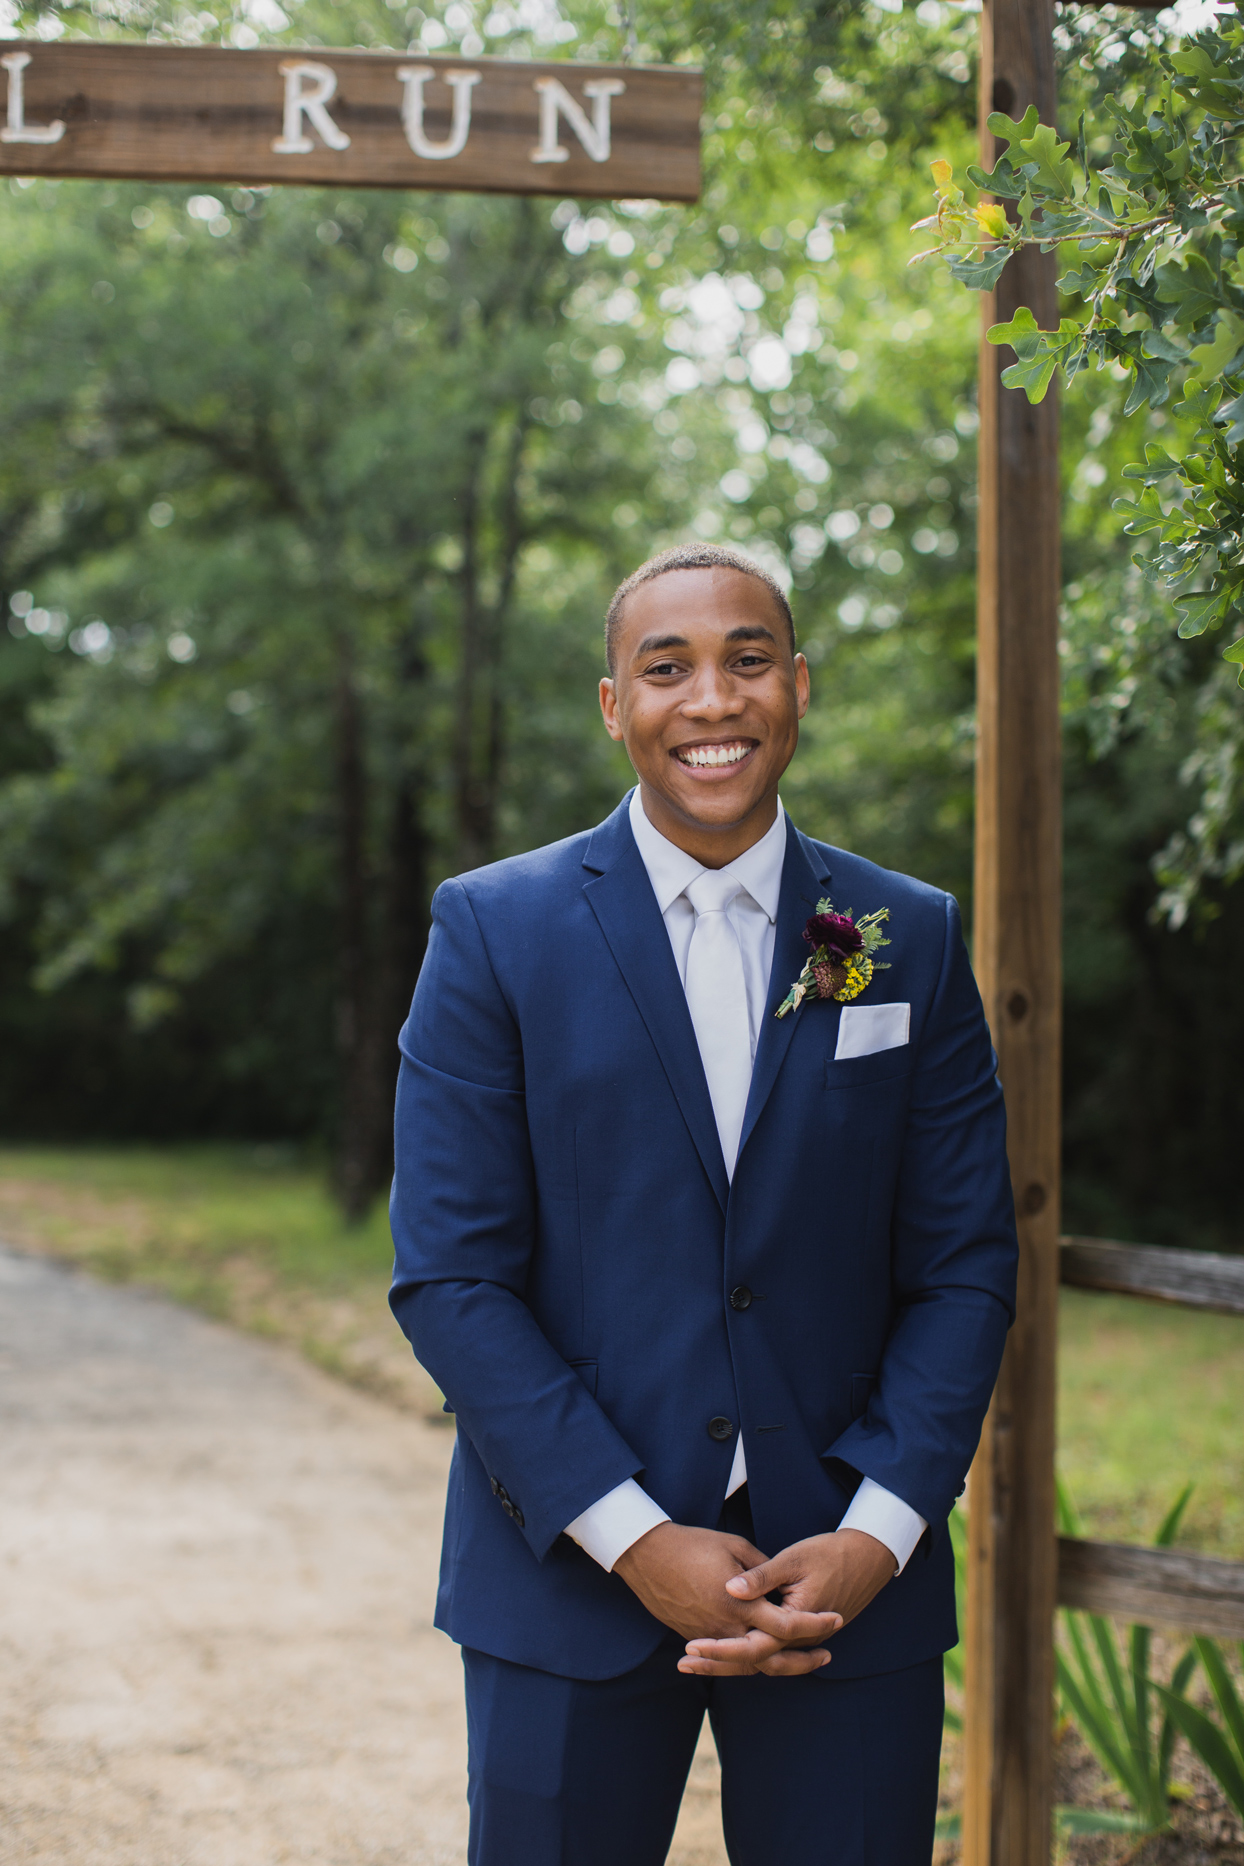 Groom standing outside in blue suit